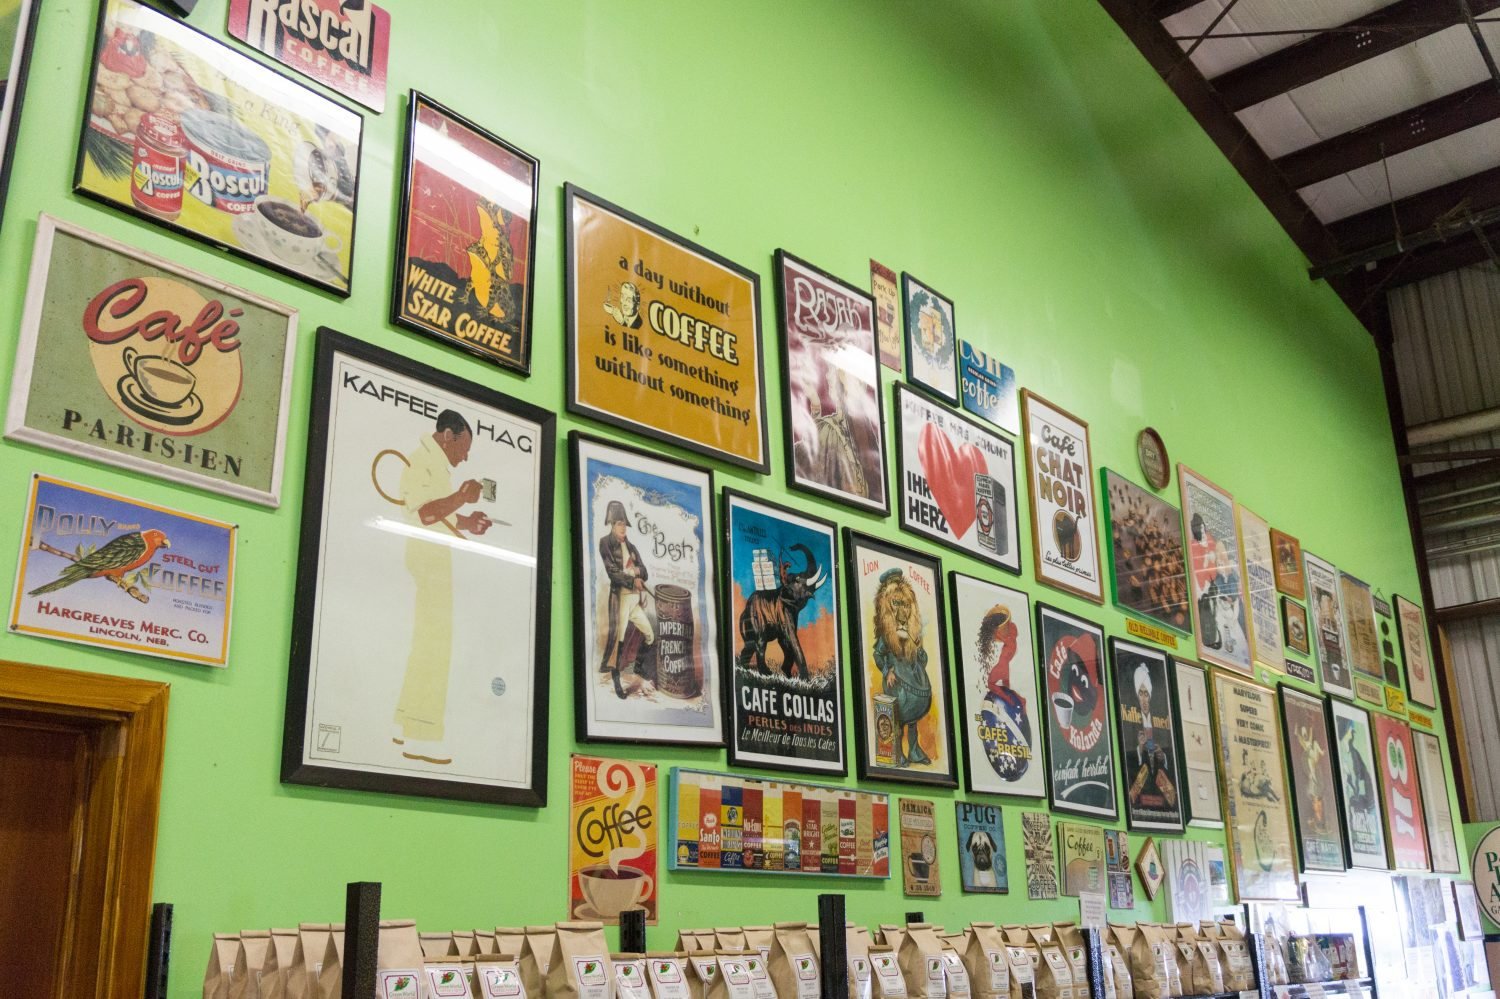 Green wall with framed coffee prints